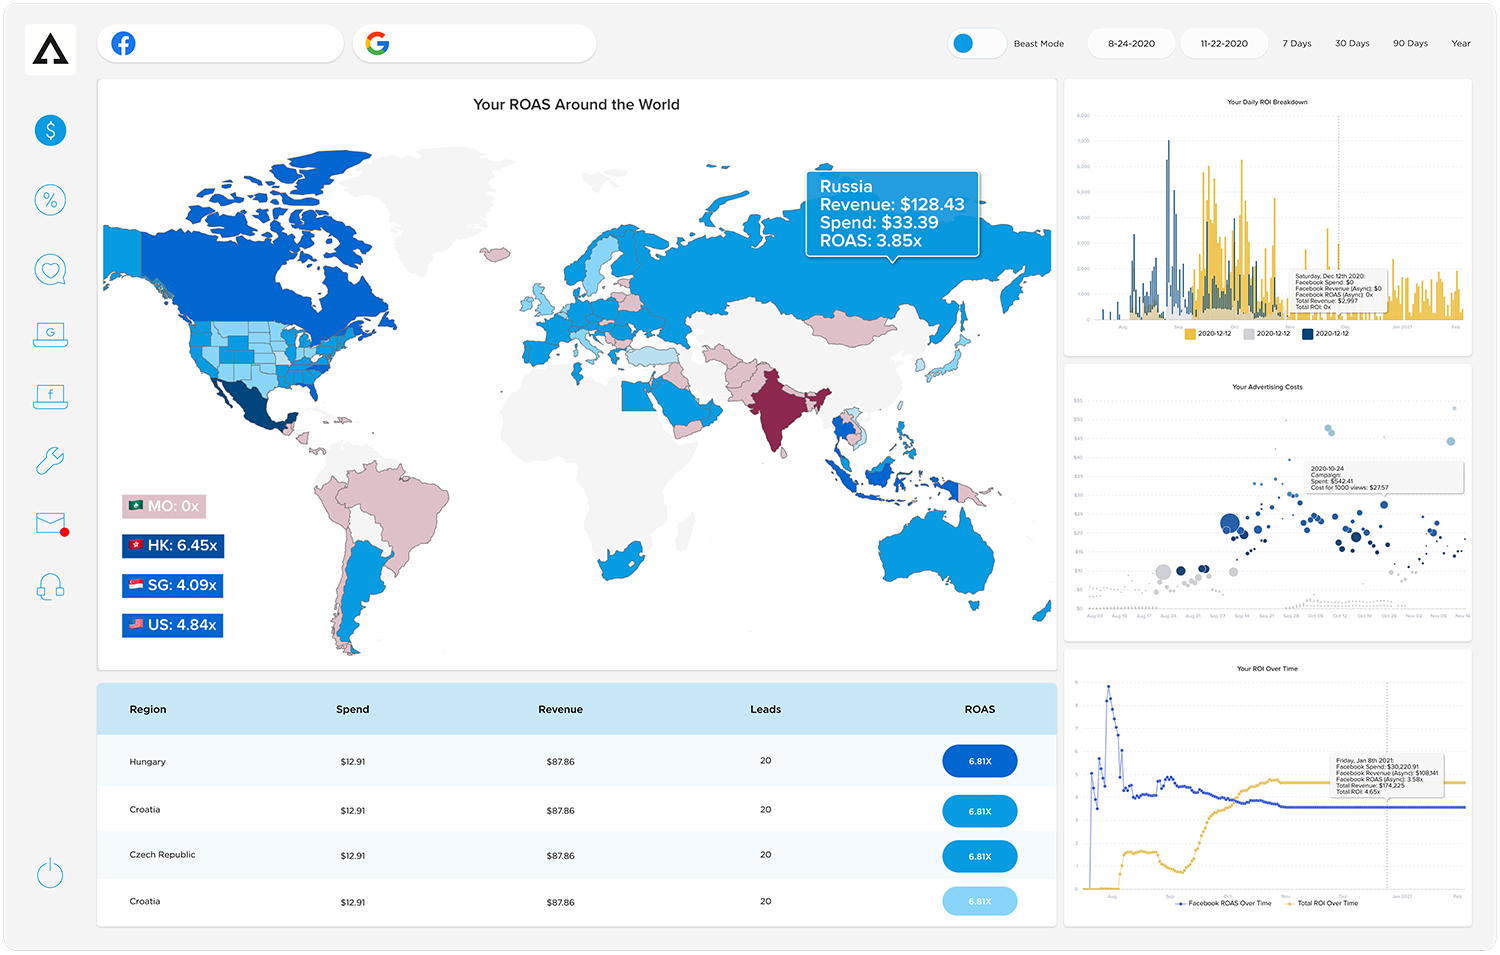 Aphrodite Software - Ad Account Dashboard, featuring our patent-pending ROAS Map. Stay focused on the KPIs that matter for business.